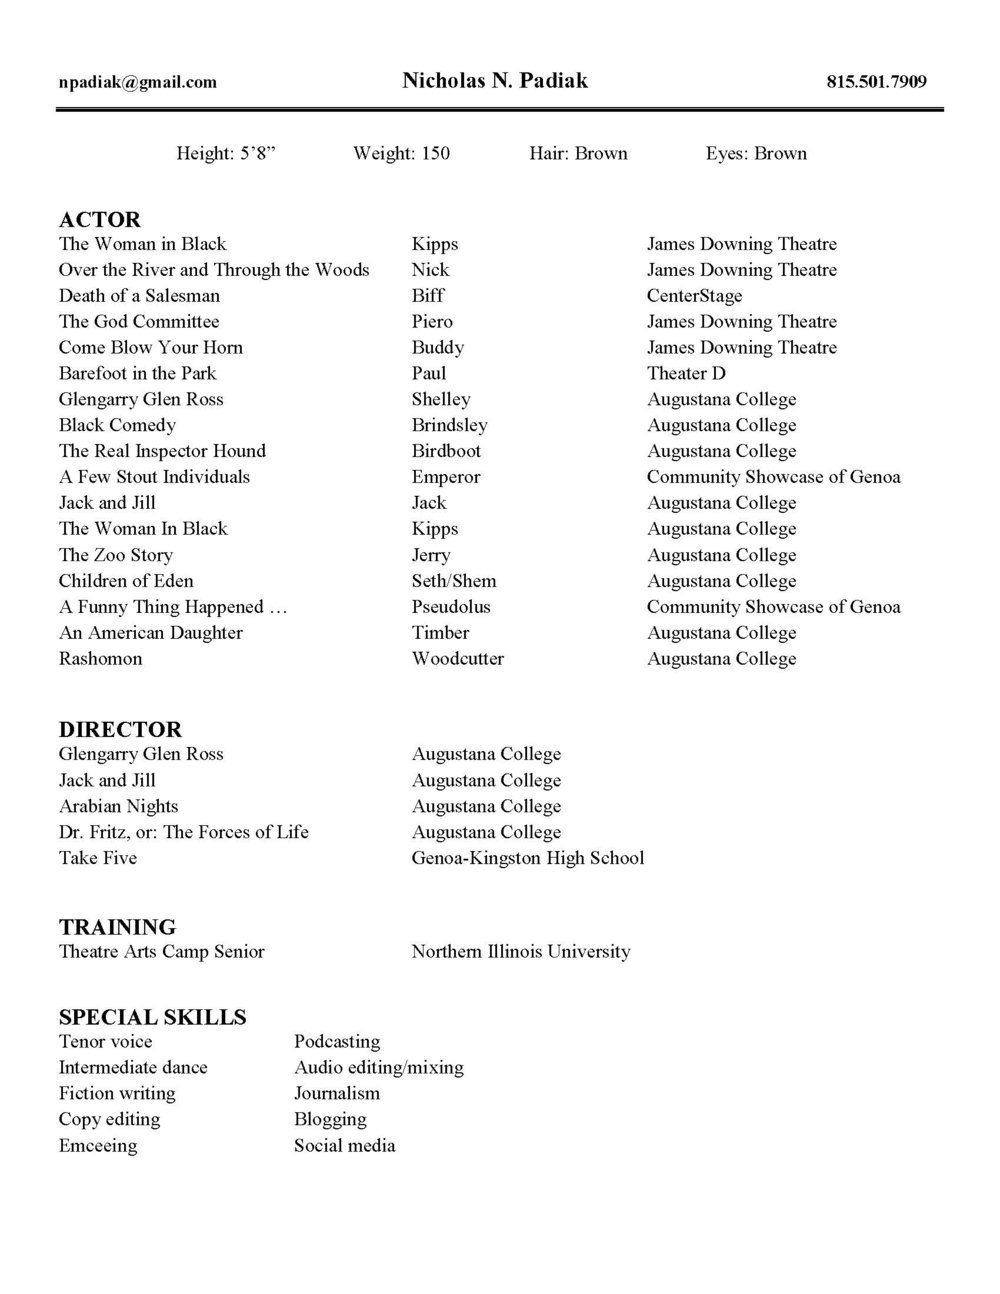 Acting resume--click to expand